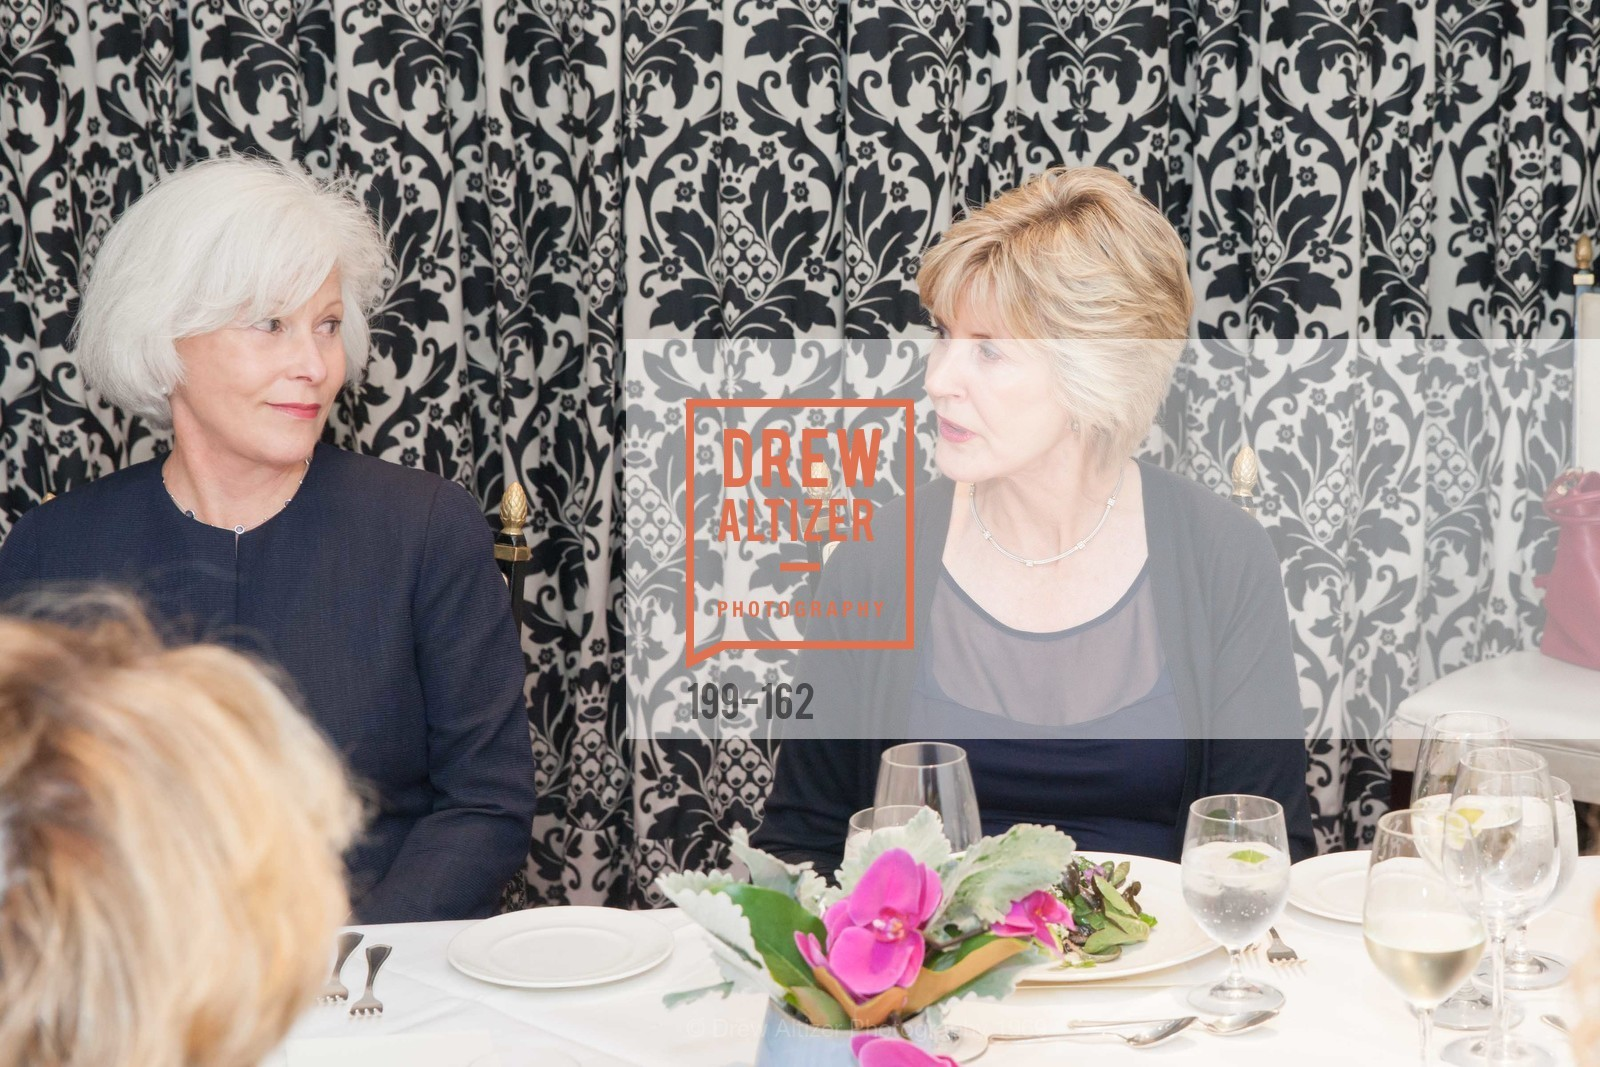 Mickie Anderson, Jo Eriko, National Museum of Women in the Arts Luncheon Hosted by Lorna Meyer Calas, Villa Taverna. 27 Hotaling Place, June 14th, 2015,Drew Altizer, Drew Altizer Photography, full-service event agency, private events, San Francisco photographer, photographer California